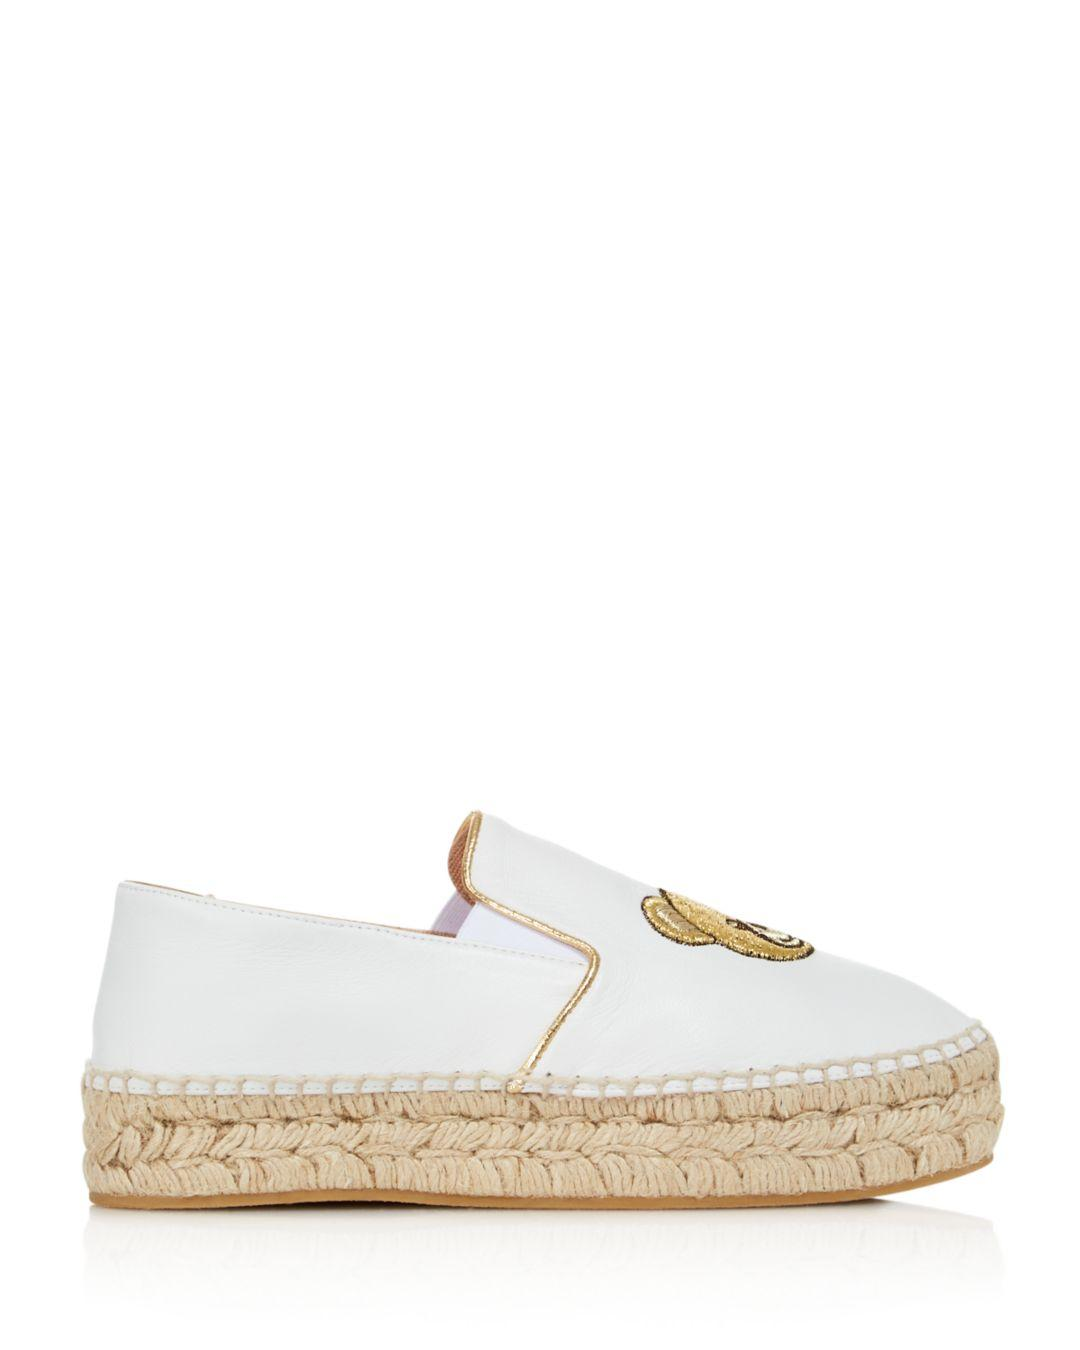 9a3851c7140d Lyst - Moschino Women s Teddy Leather Espadrille Flats in White